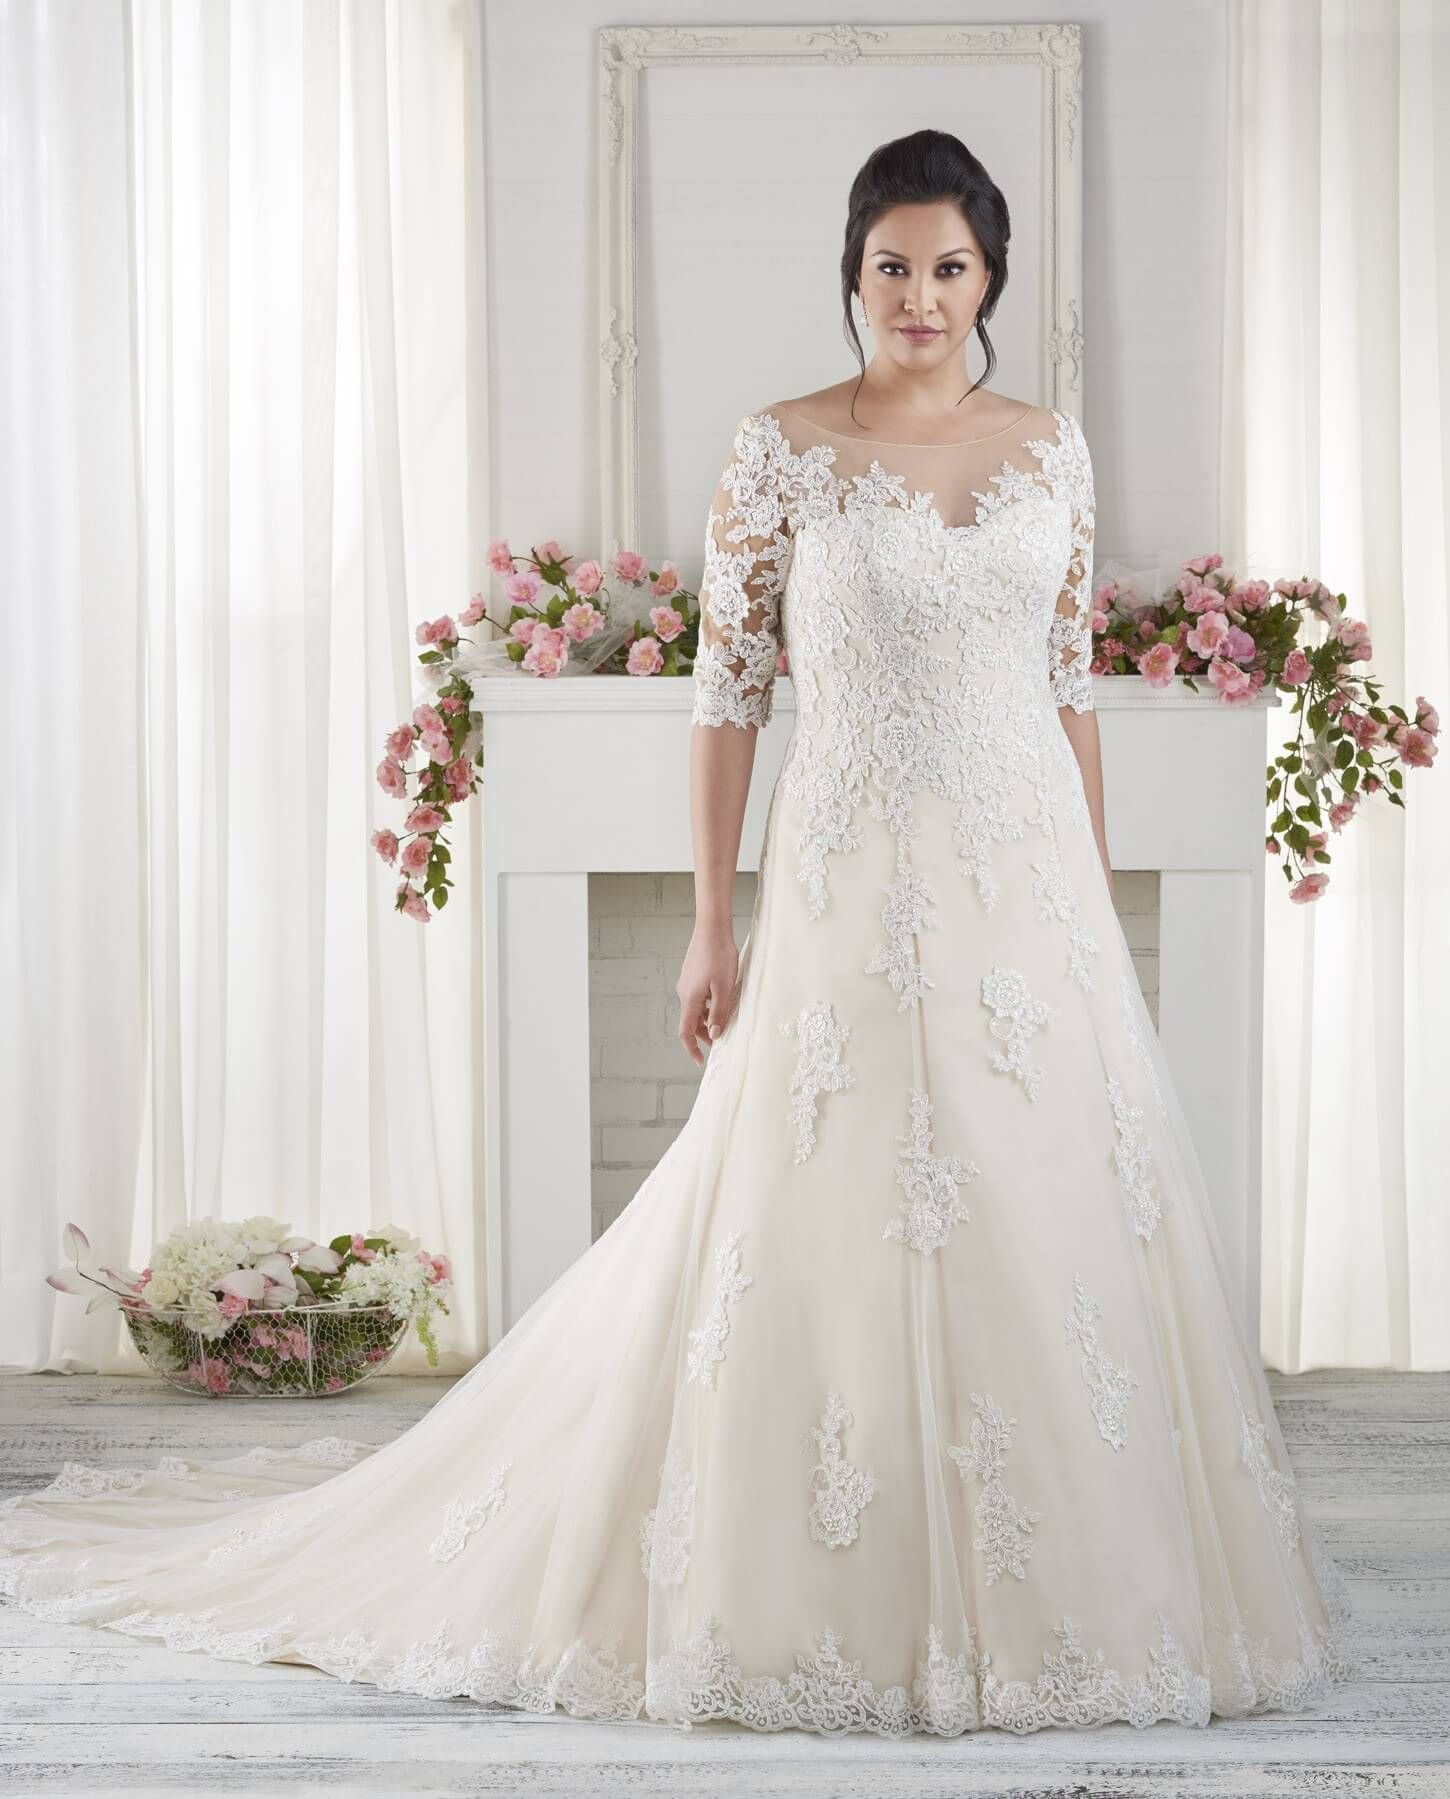 d15cfa82c2c Wedding Dresses for Chubby Brides - Wedding Dresses for Plus Size Check more  at http